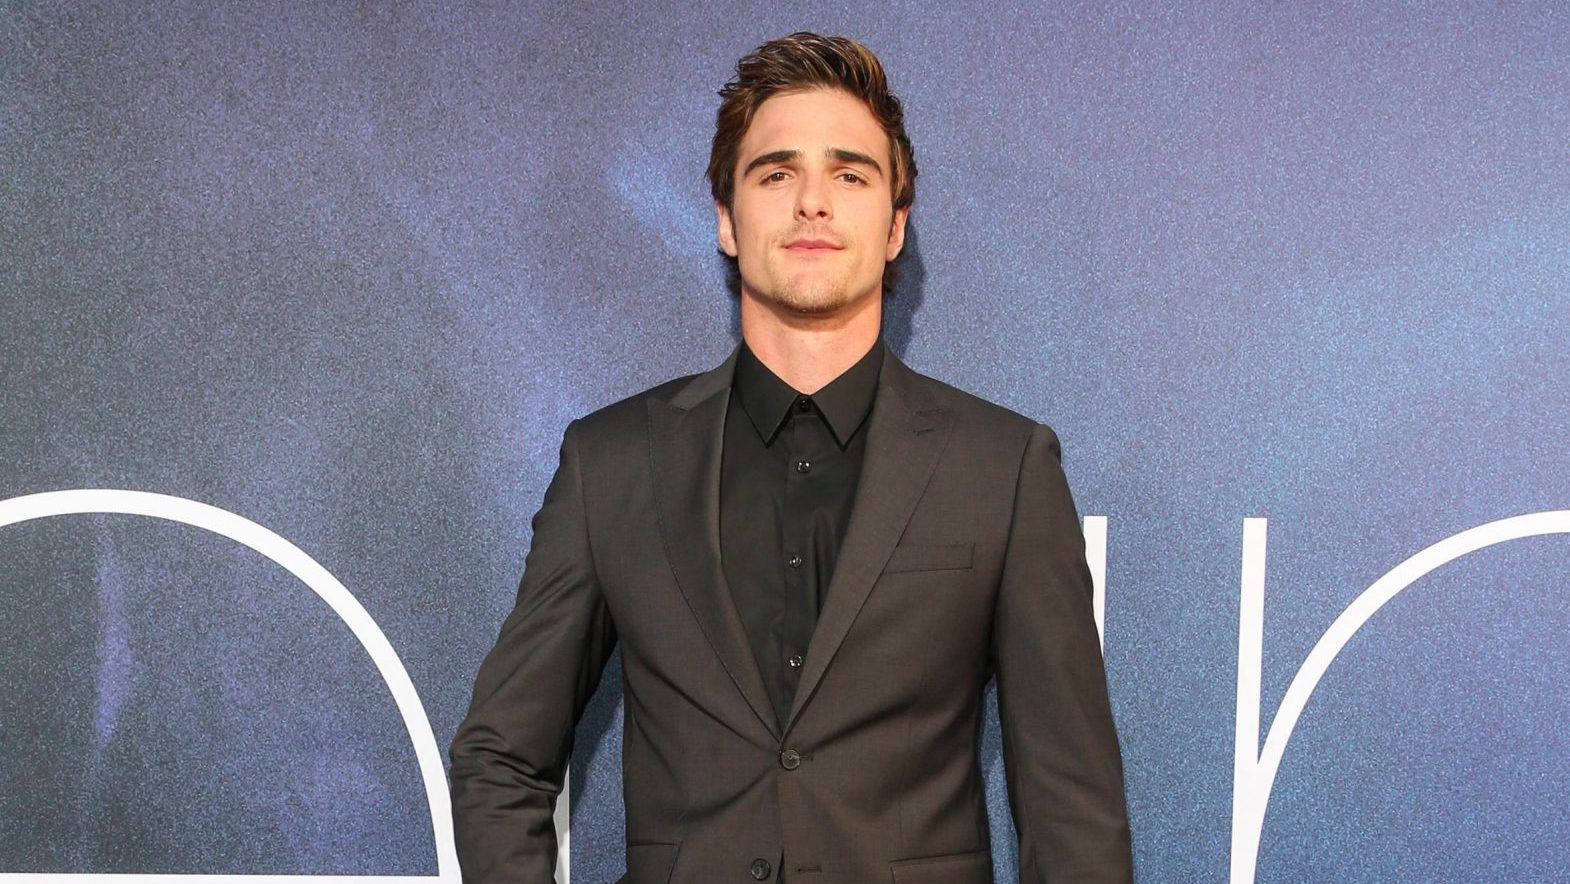 Who Is Jacob Elordi? Zendaya Sparks Dating Rumors With Costar